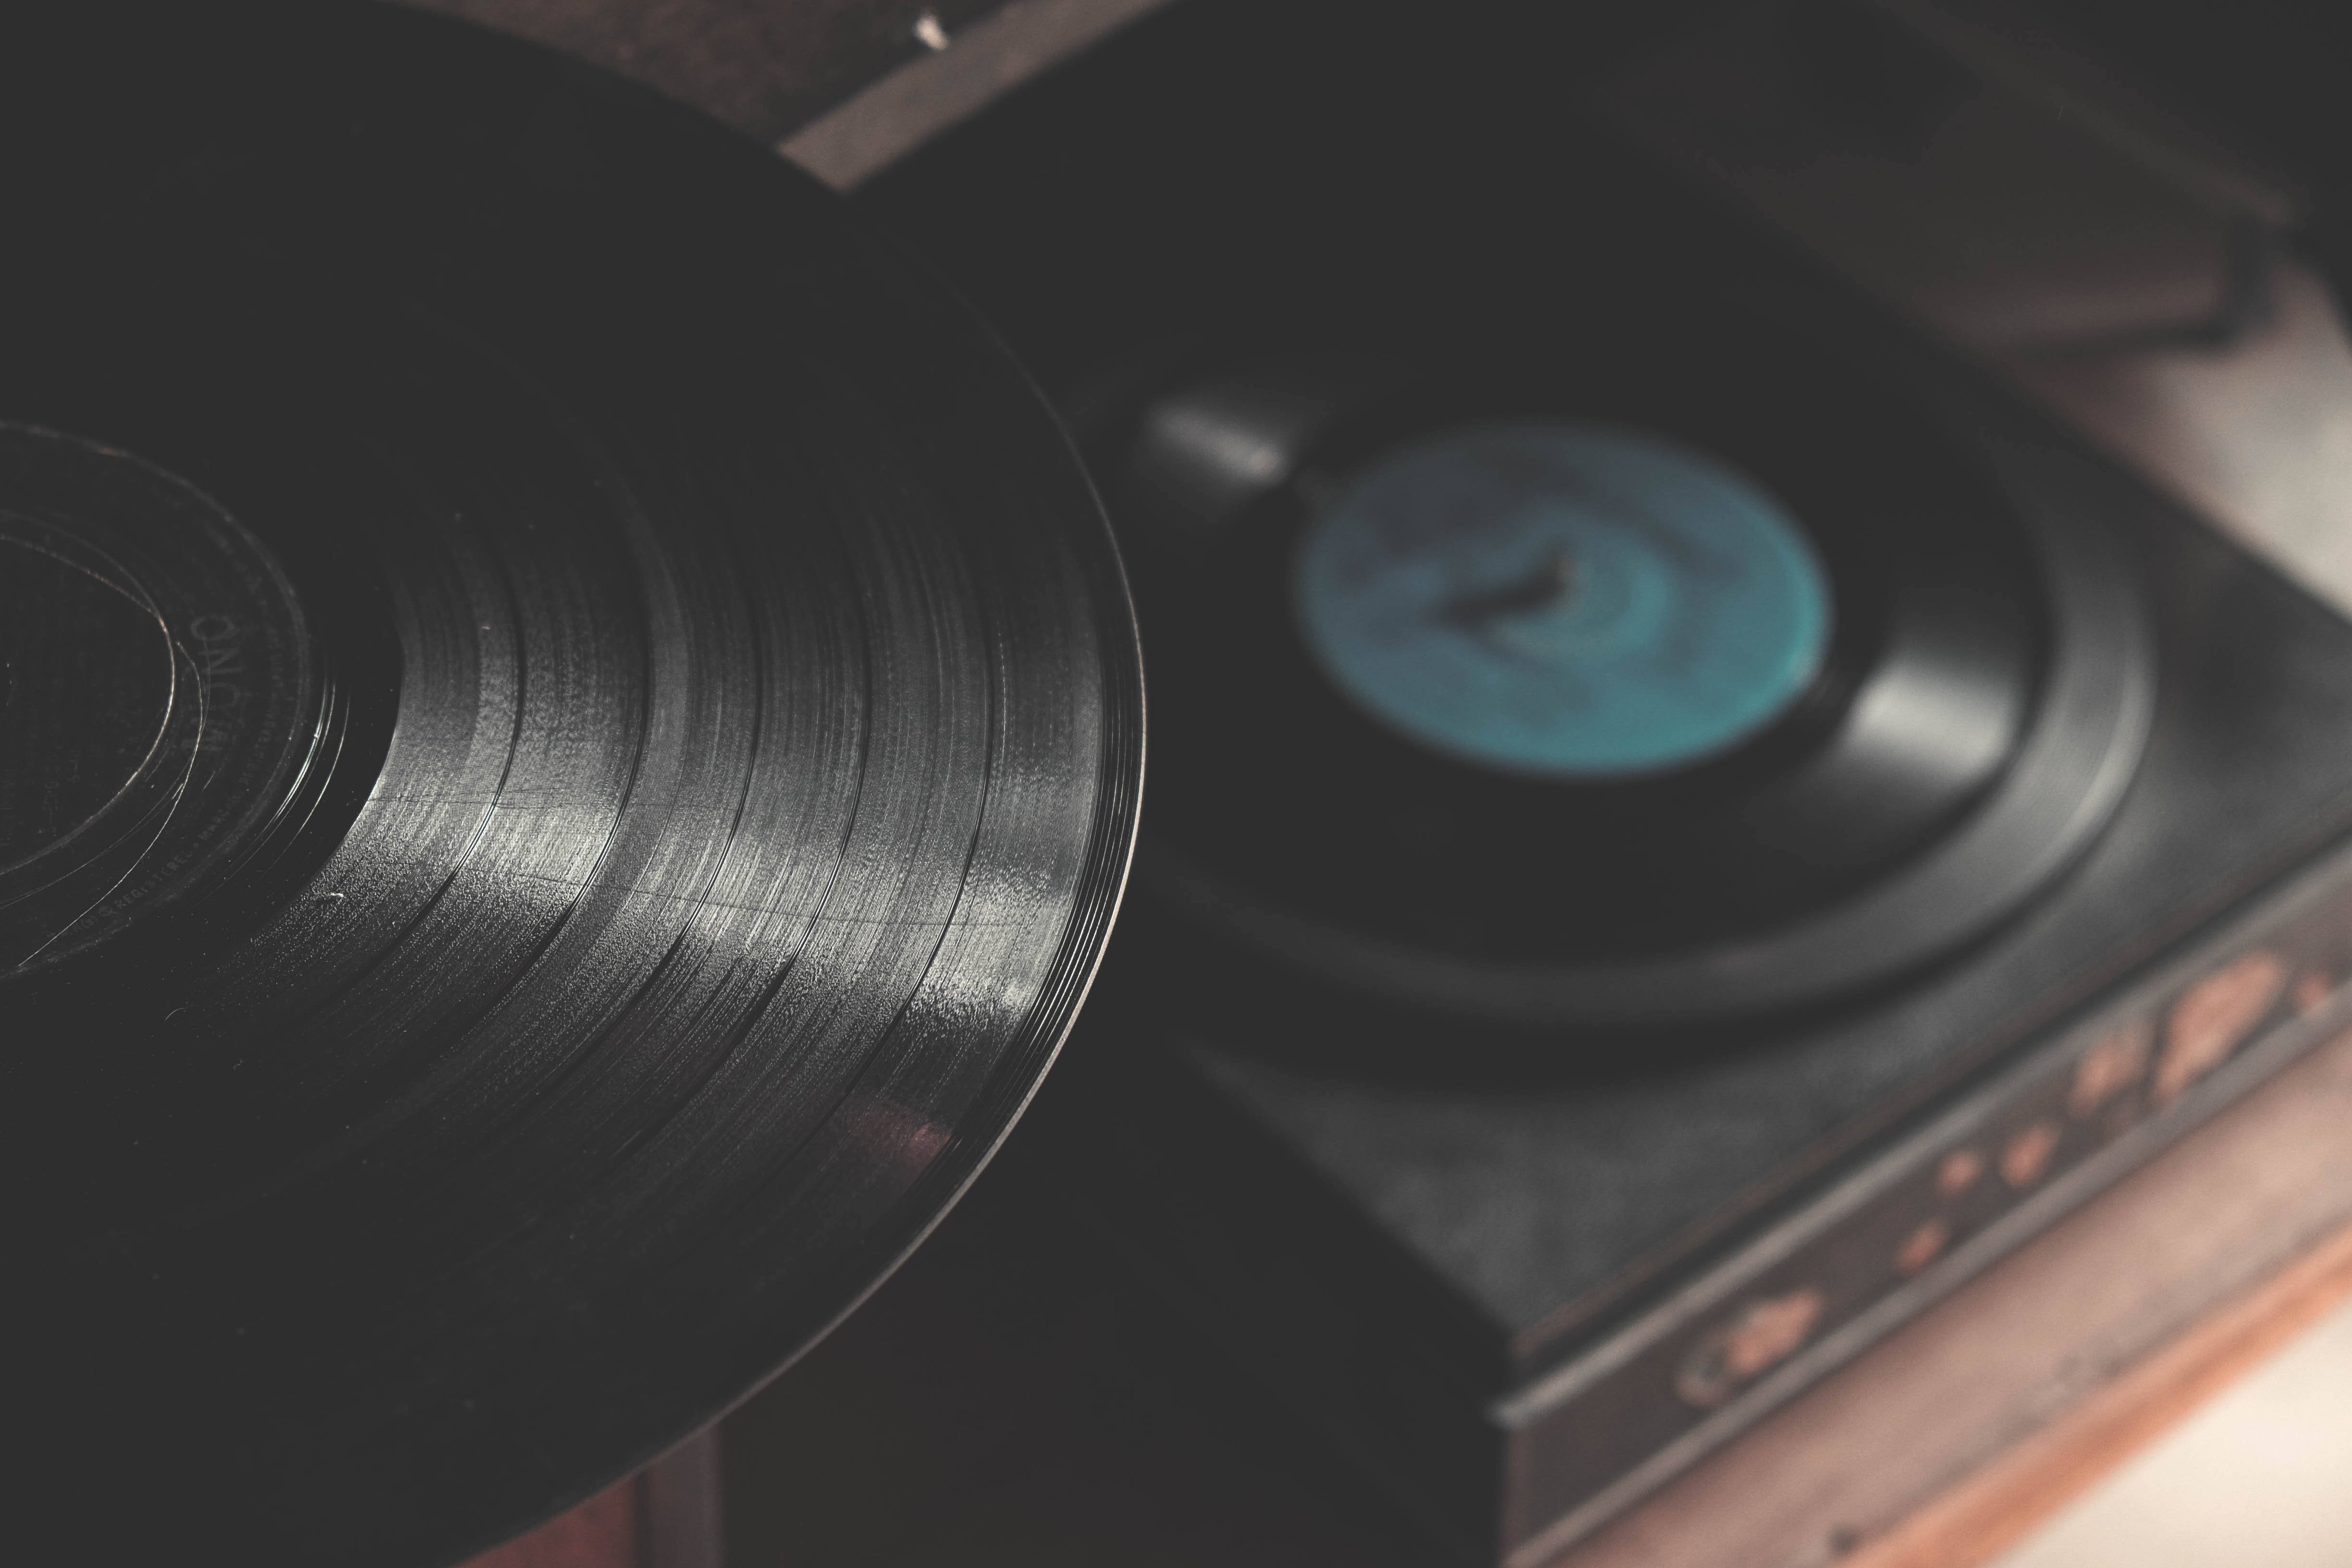 An overhead shot of a vinyl record on a cabinet over a vinyl player